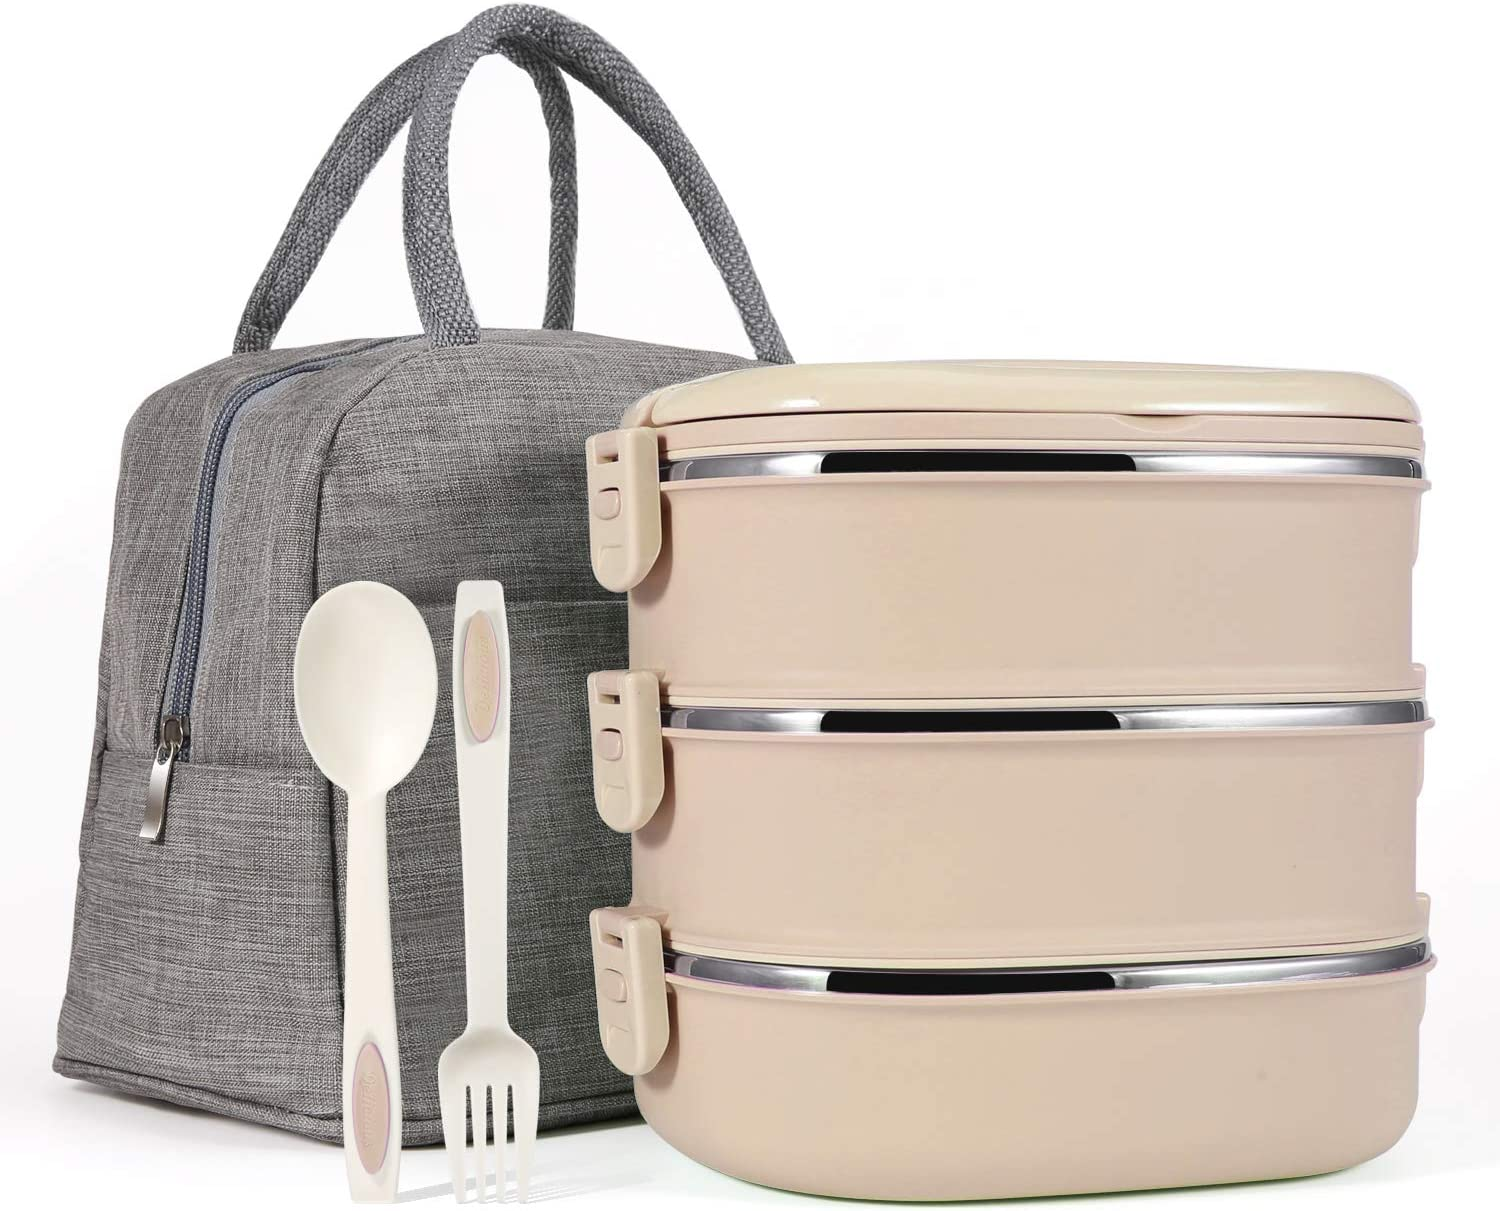 Mr.Dakai Stackable Bento Lunch Box for Kids/Adults, 3 Tier Insulated Stainless Steel Leakproof Food Container with 600D Oxford washable Lunch Bag and Fork & Spoon, BPA Free - Khaki